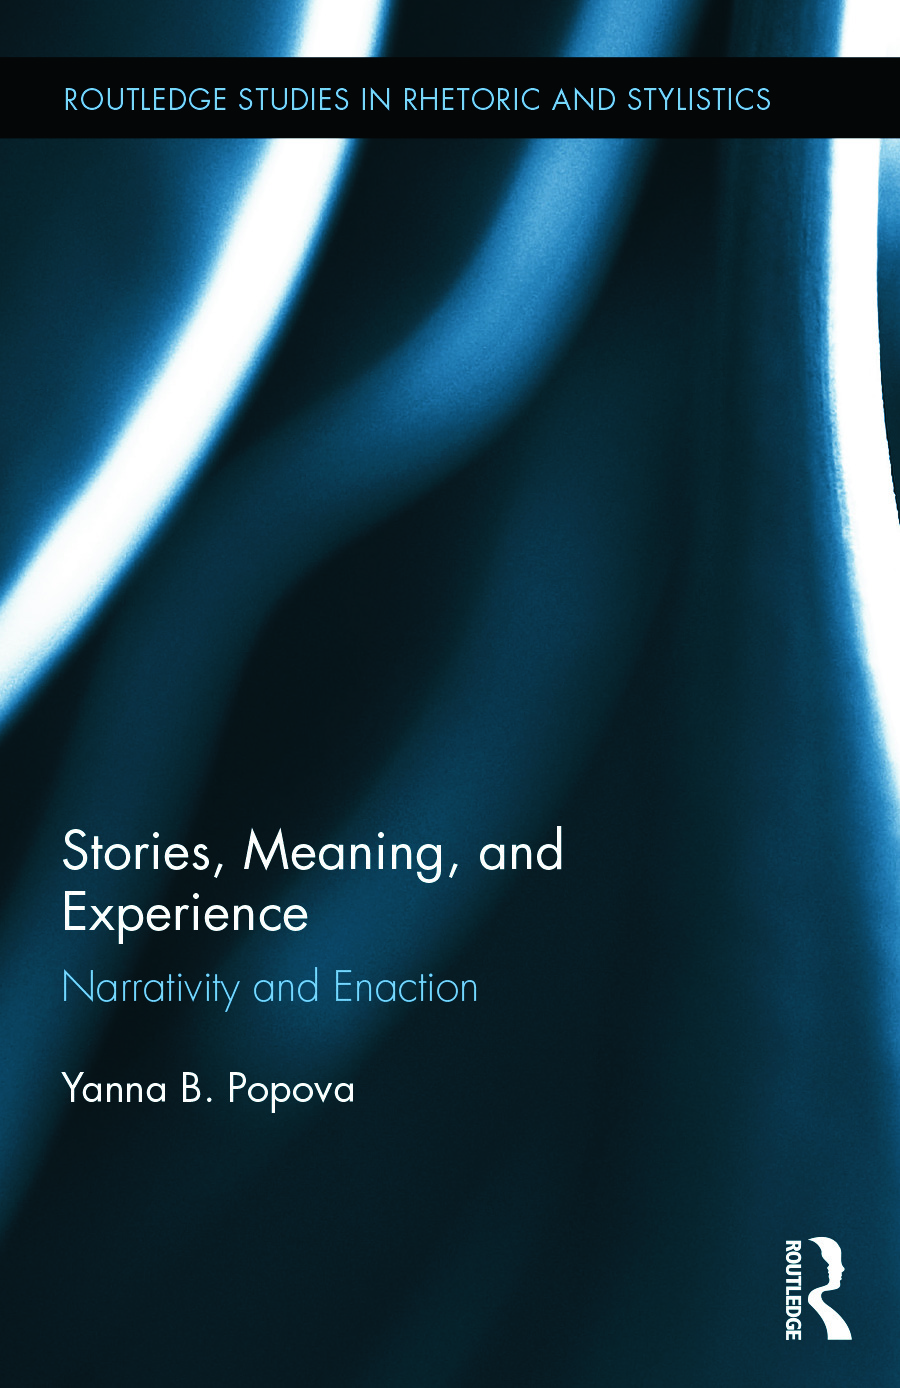 Stories, Meaning, and Experience: Narrativity and Enaction book cover